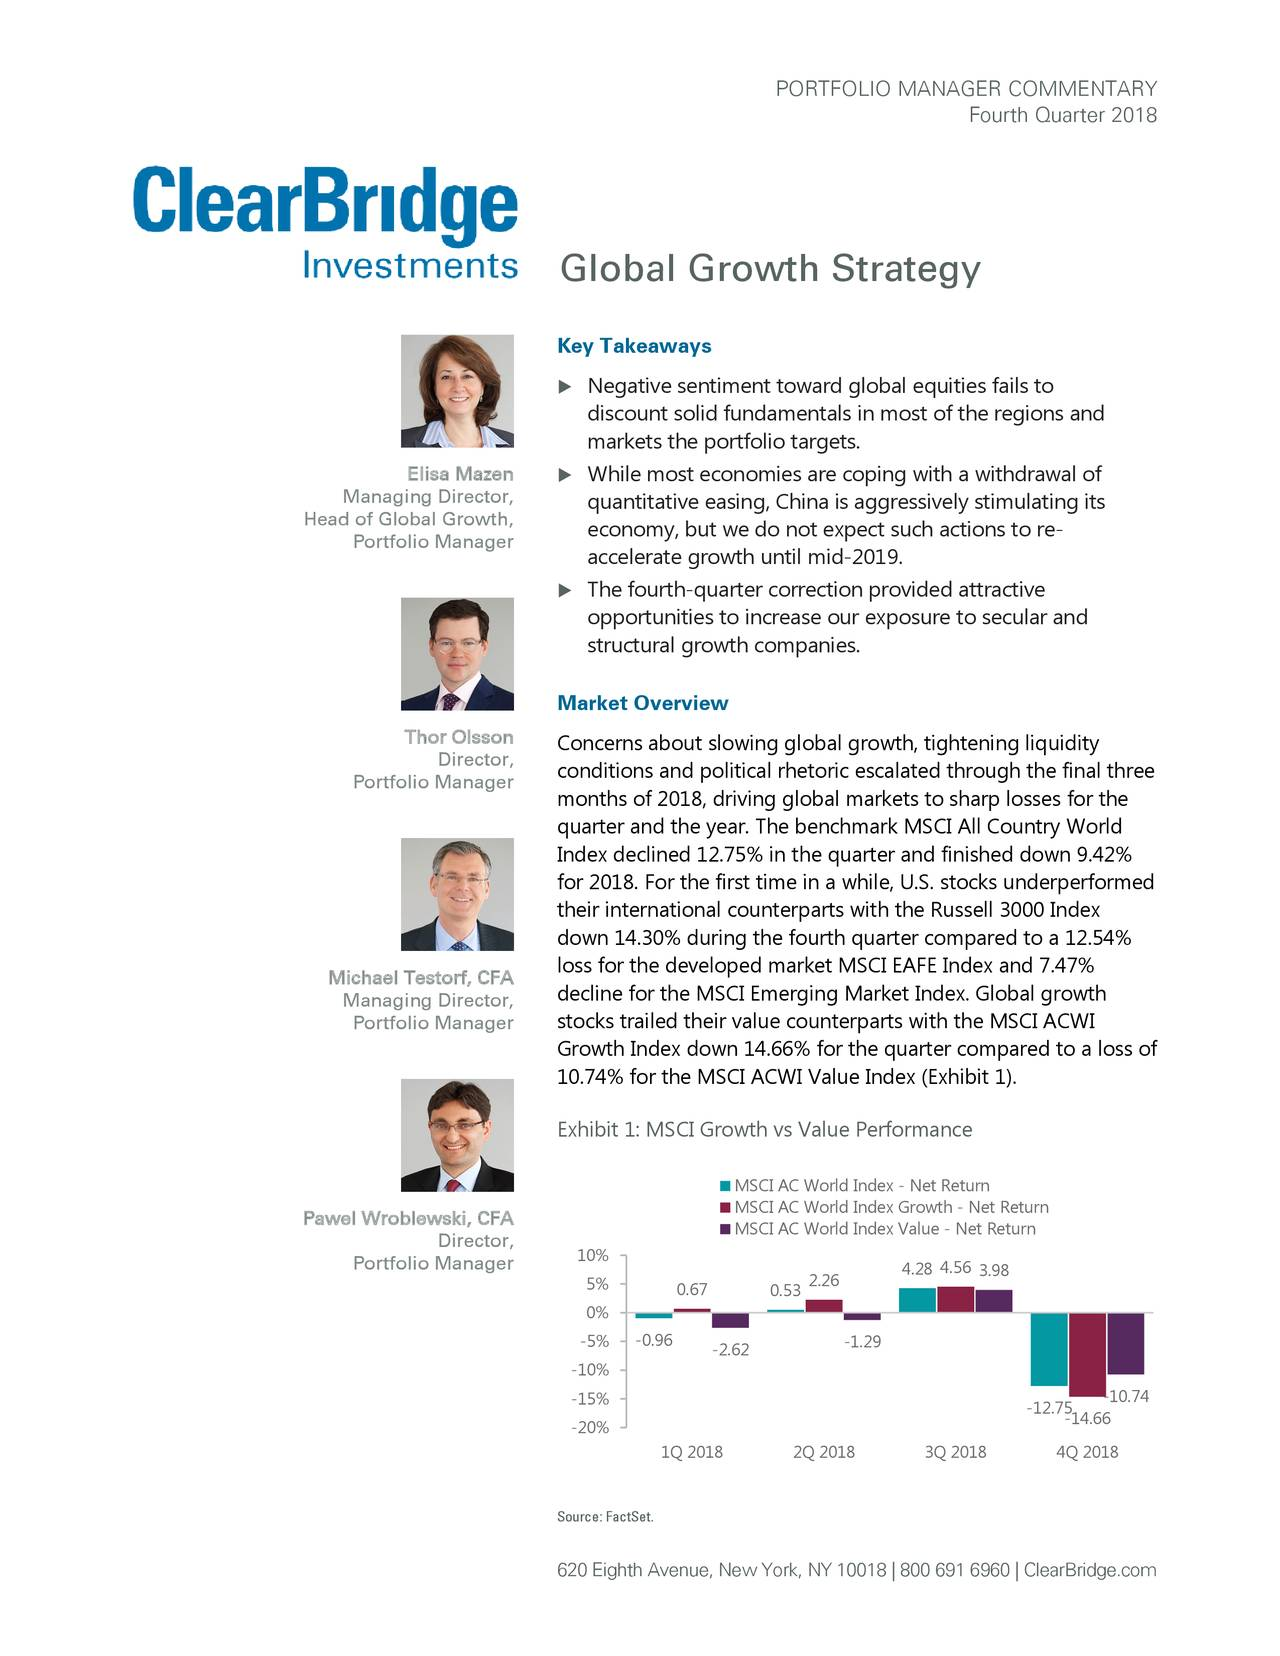 Fourth Quarter 2018 Global Growth Strategy Key Takeaways  Negative sentiment toward global equities fails to discount solid fundamentals in most of the regions and markets the portfolio targets. Elisa Mazen  While most economies are coping with a withdrawal of Managing Director, quantitative easing, China is aggressively stimulating its Head of Global Growth, economy, but we do not expect such actions to re - Portfolio Manager accelerate growth until mid -2019.  The fourth-quarter correction provided attractive opportunities to increase our exposure to secular and structural growth companies. Market Overview Thor Olsson Concerns about slowing global growth, tightening liquidity Director, Portfolio Manager conditions and political rhetoric escalated through the final three months of 2018, driving global markets to sharp losses for the quarter and the year. The benchmark MSCI All Country World Index declined 12.75% in the quarter and finished down 9.42% for 2018. For the first time in a while, U.S. stocks underperformed their international counterparts with the Russell 3000 Index down 14.30% during the fourth quarter compared to a 12.54% loss for the developed market MSCI EAFE Index and 7.47% Michael Testorf, CFA Managing Director, decline for the MSCI Emerging Market Index. Global growth Portfolio Manager stocks trailed their value counterparts with the MSCI ACWI Growth Index down 14.66% for the quarter compared to a loss of 10.74% for the MSCI ACWI Value Index (Exhibit 1). Exhibit 1: MSCI Growth vs Value Performance MSCI AC World Index - Net Return Pawel Wroblewski, CFA MSCI AC World Index Growth - Net Return MSCI AC World Index Value - Net Return Director, 10% Portfolio Manager 4.284.563.98 5% 0.67 0.532.26 0% -5% -0.96 -2.62 -1.29 -10% -15% -10.74 -12.-14.66 -20% 1Q 2018 2Q 2018 3Q 2018 4Q 2018 Source: FactSet. 620 Eighth Avenue, New York, NY 10018 | 800 691 6960 | ClearBridge.com